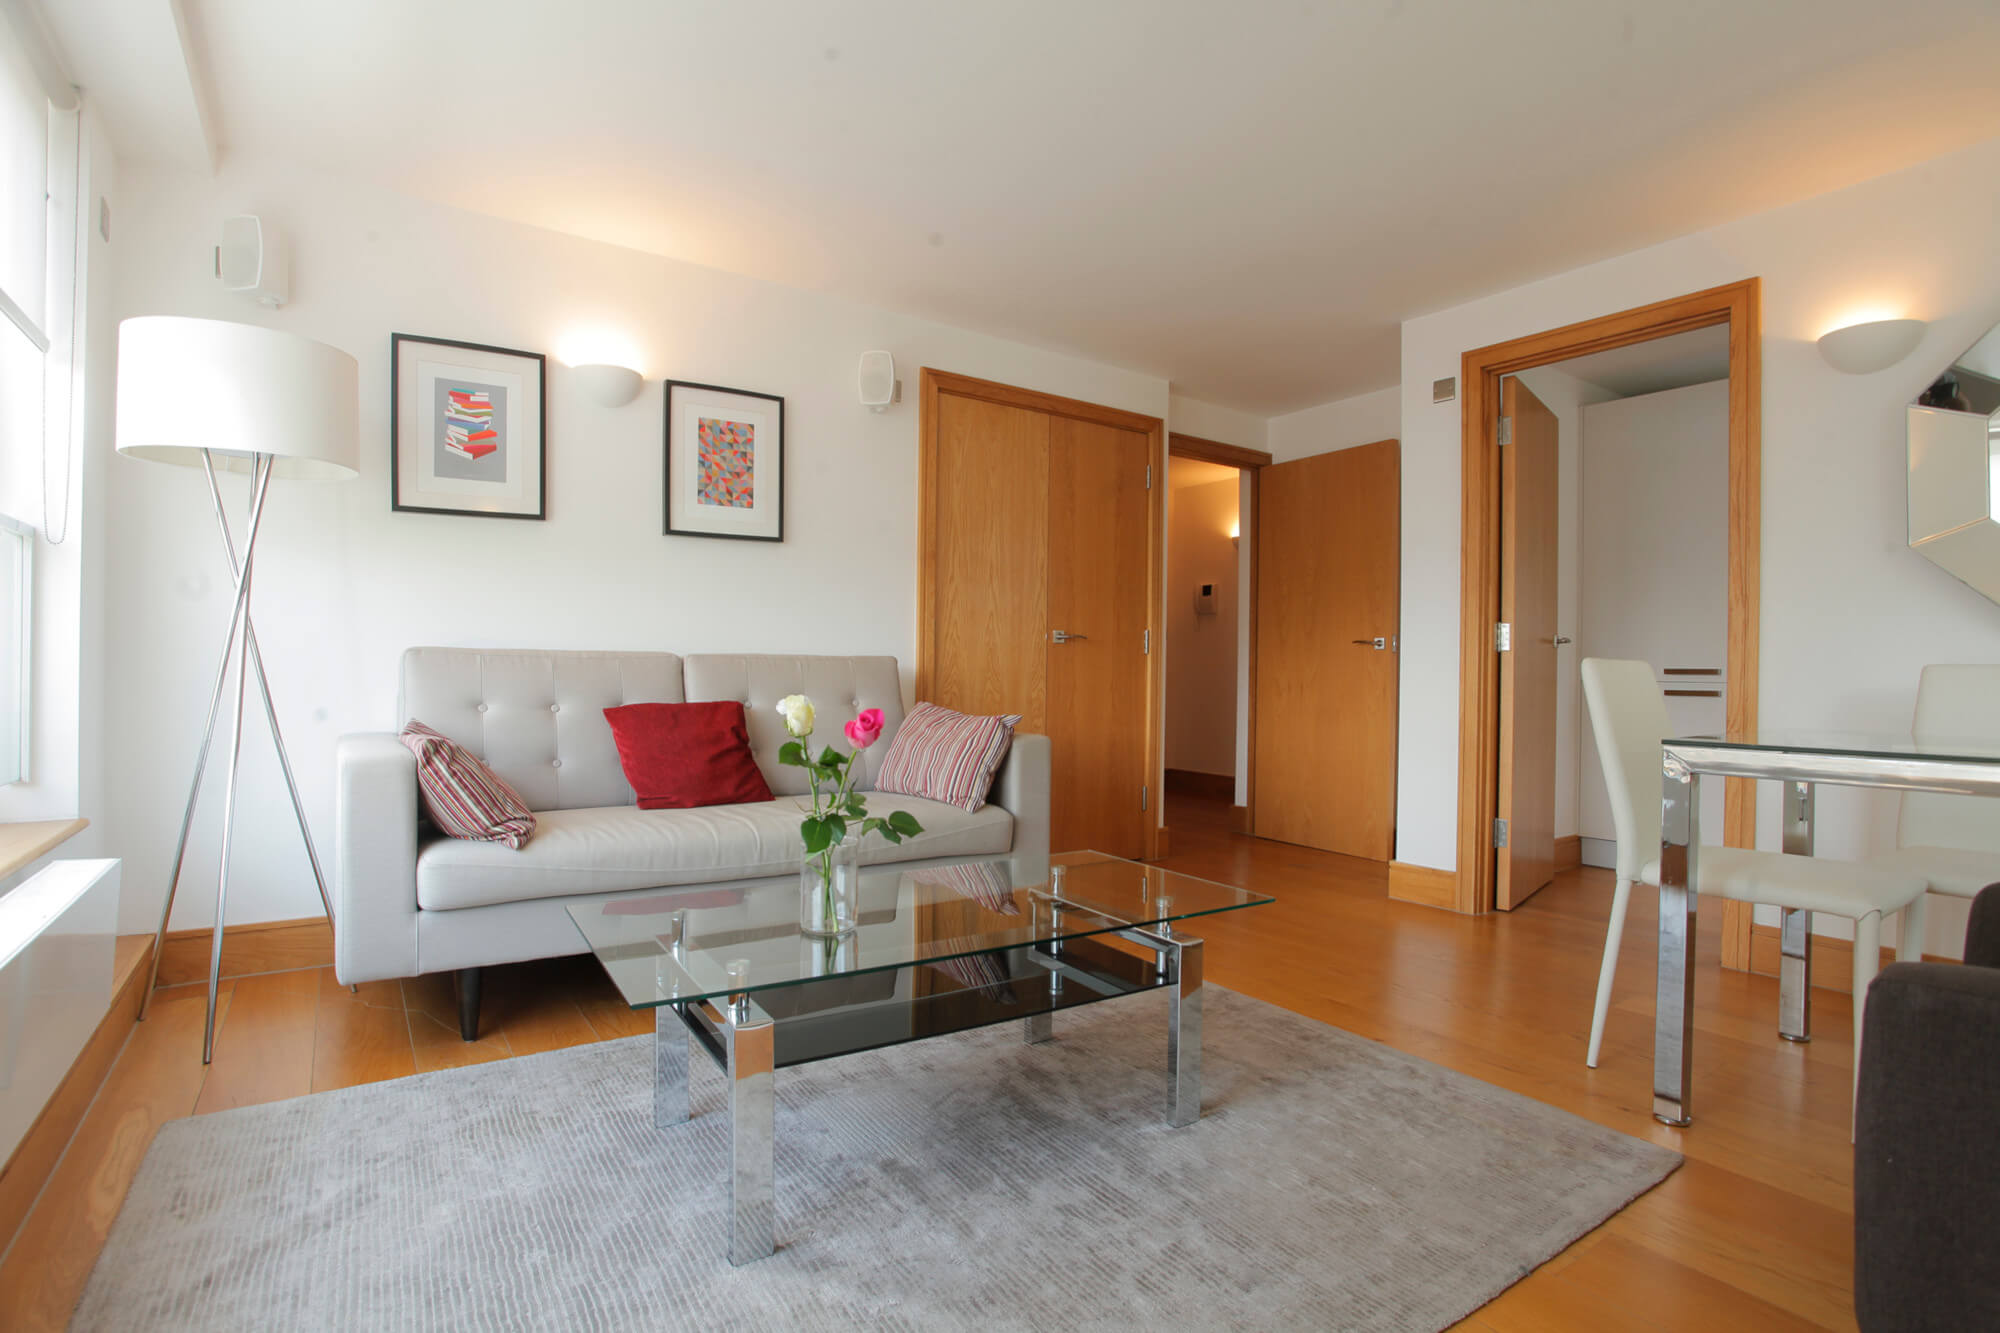 Chelsea One Bedroom Apartment London - sofa bed and coffe table